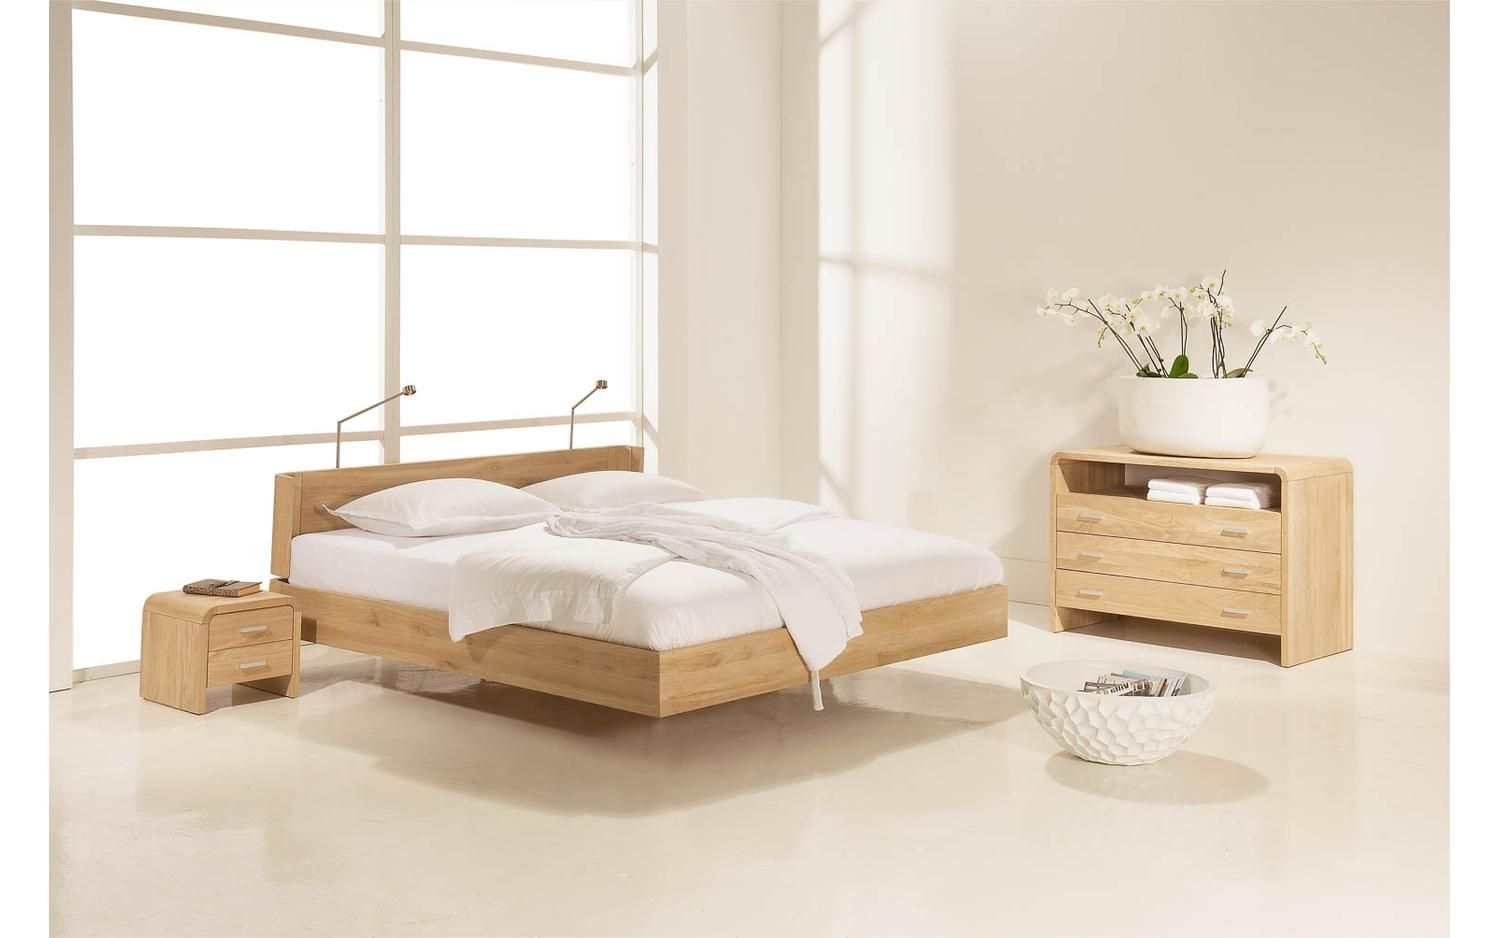 Ledikant oak bedrooms